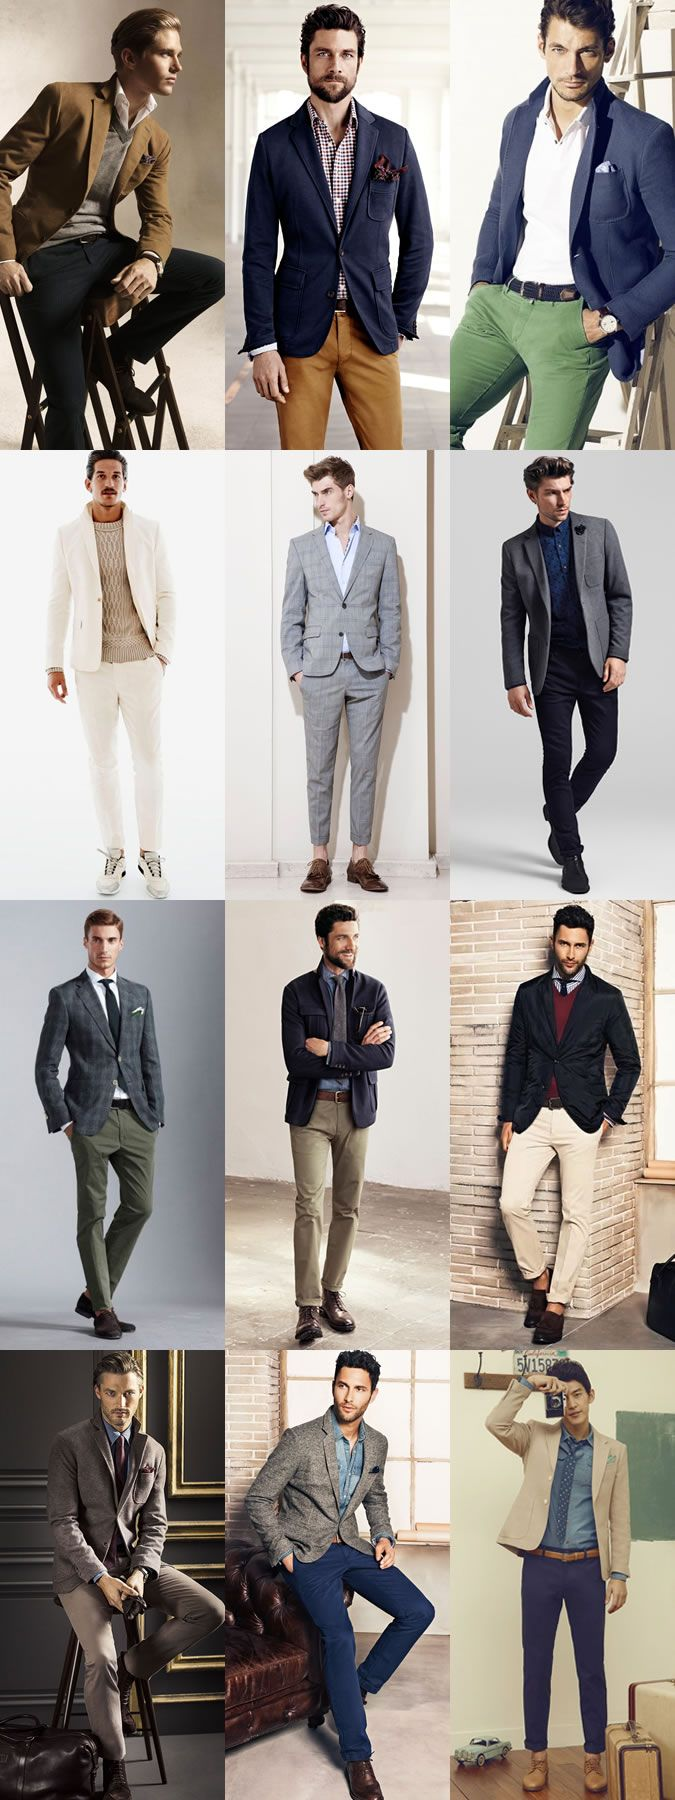 Interview Attire - Creative Industries - Smart-Casual Combinations/Outfits